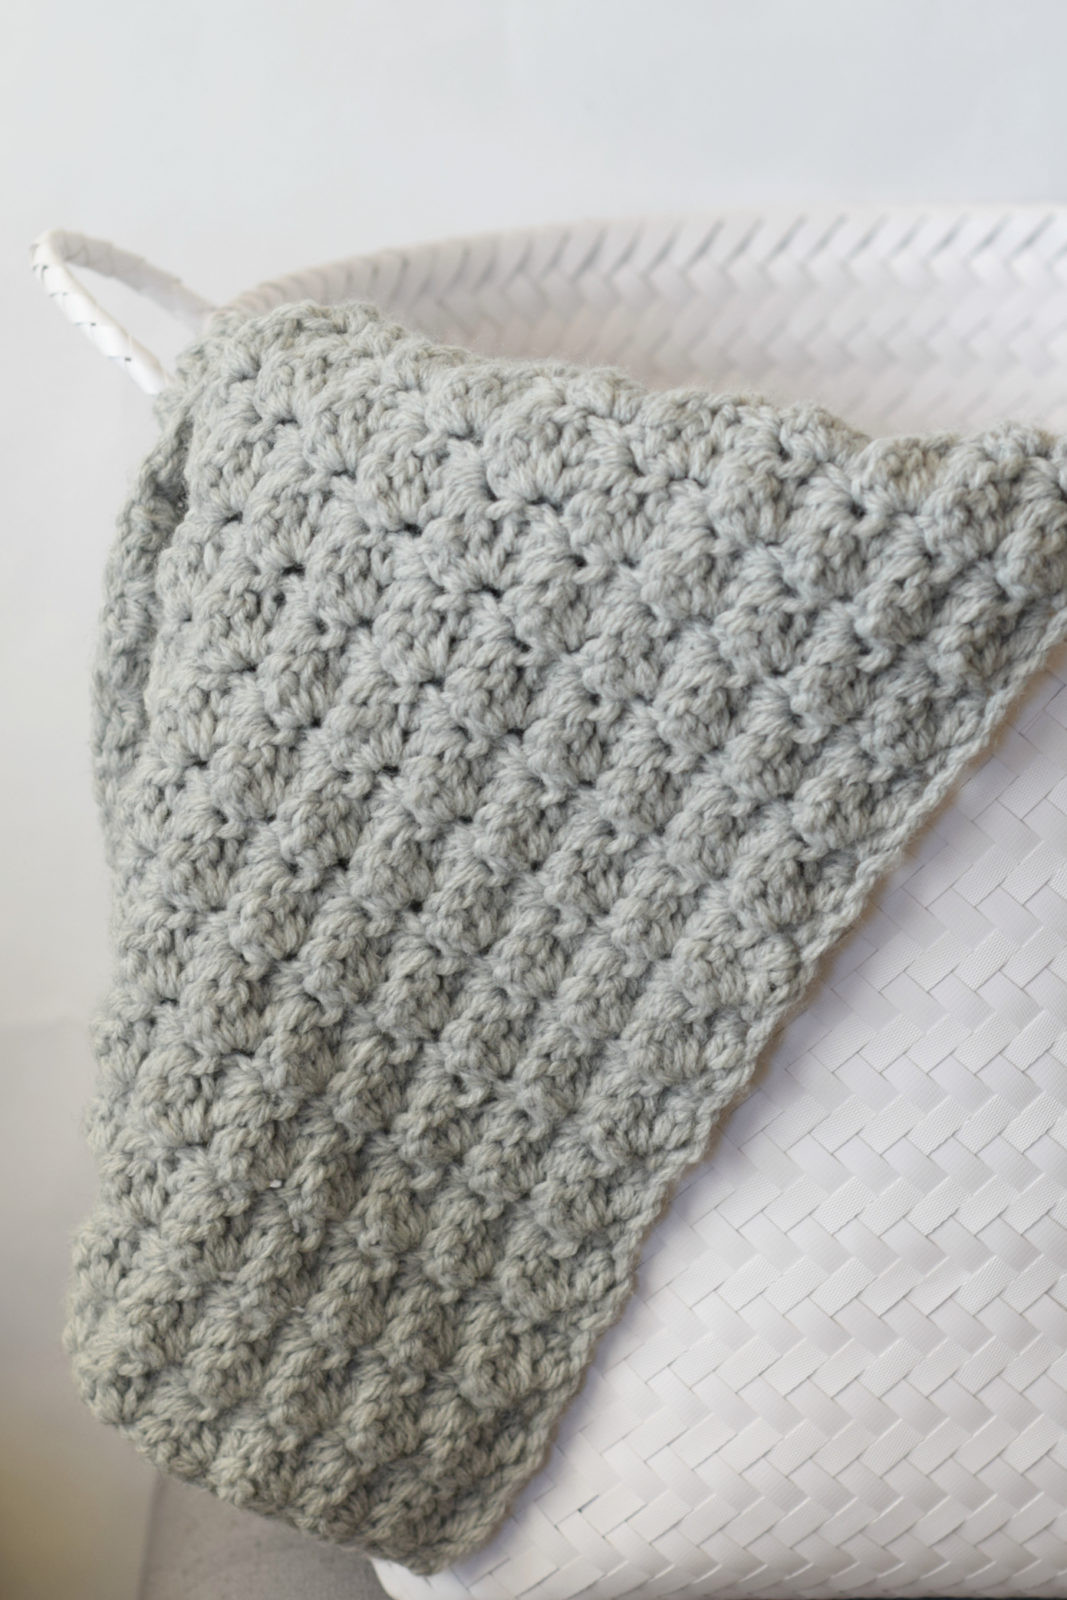 Easy Baby Blanket Awesome Simple Crocheted Blanket Go to Pattern – Mama In A Stitch Of Marvelous 42 Images Easy Baby Blanket